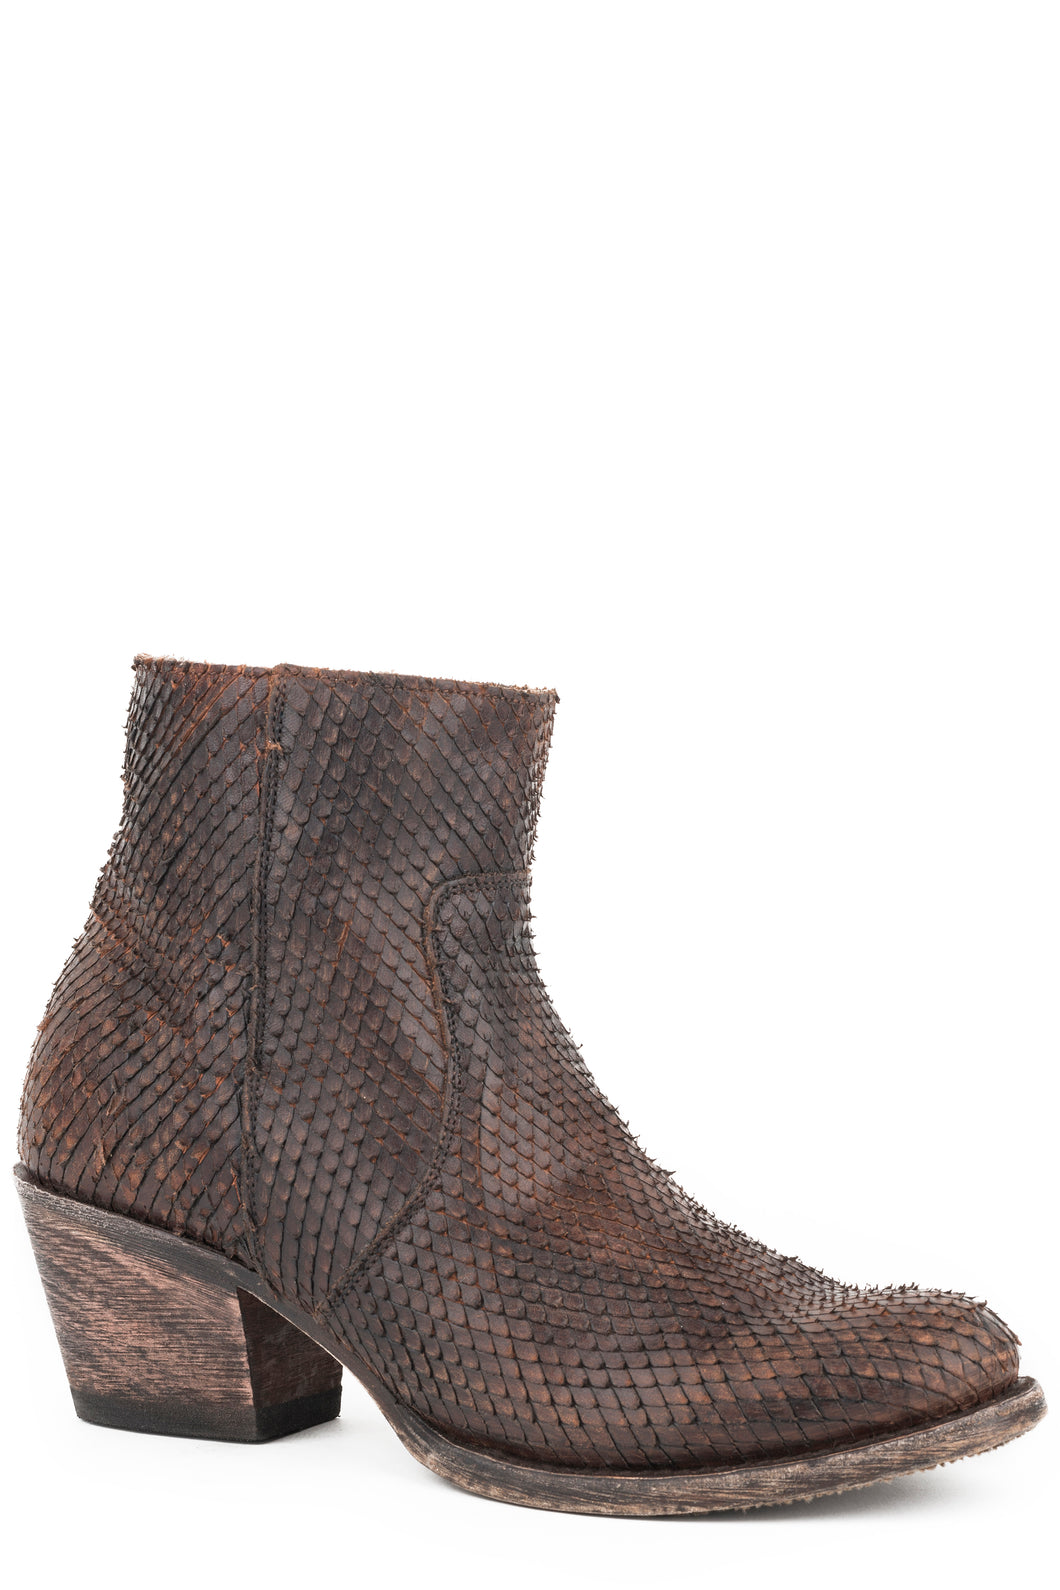 Dani Boot Womens Boot Distressed Brown Diamond Cut Vamp And